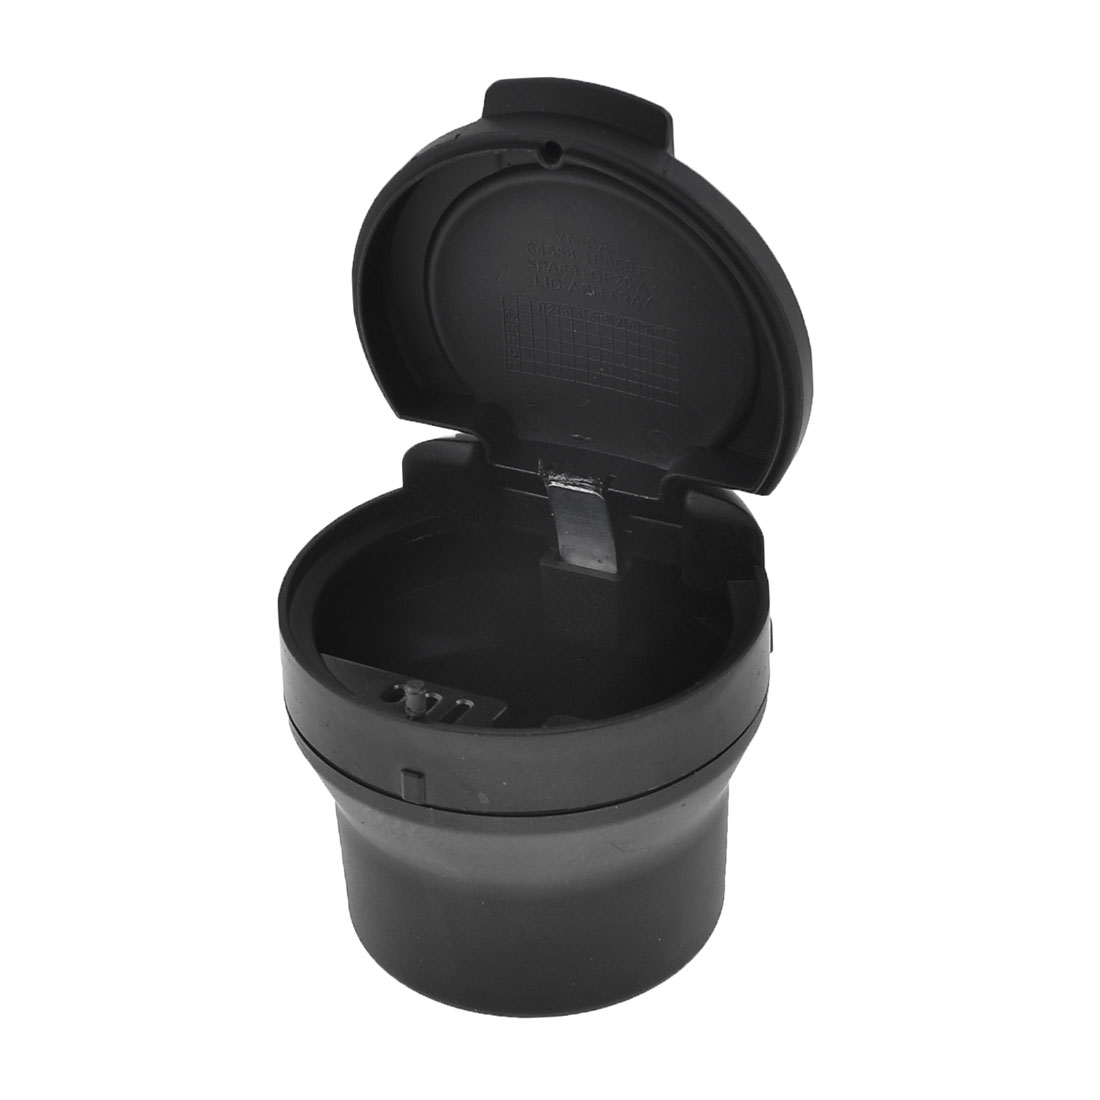 Home Car Portable Cylinder Design Plastic Rubber Ashtray Black